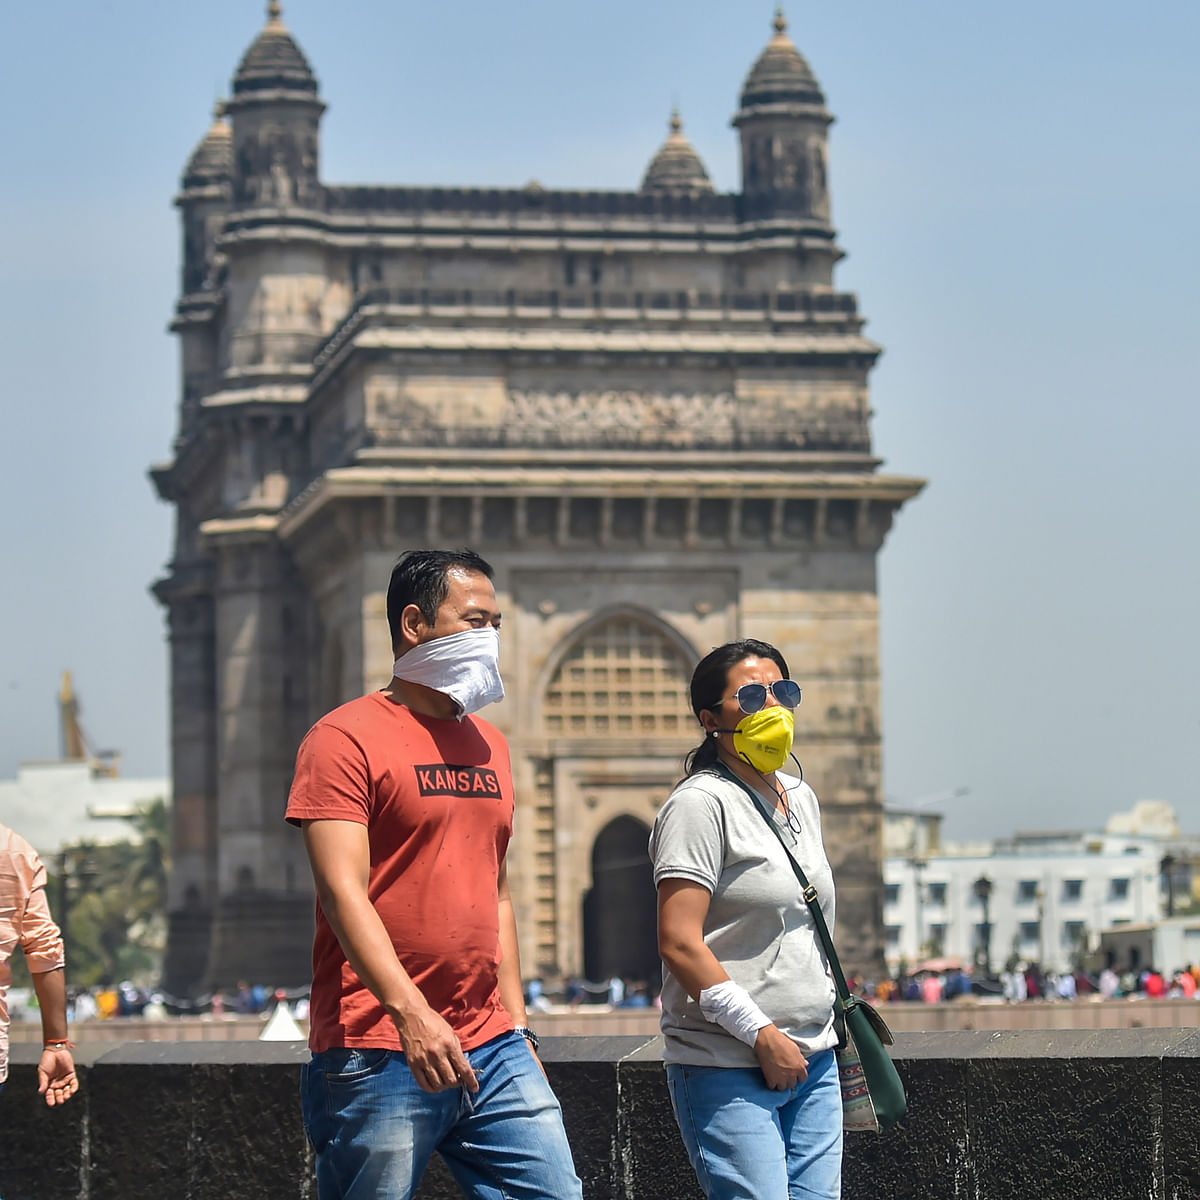 COVID-19 in Mumbai: BMC collects over Rs 58 cr in fines from people for not wearing face masks in public places